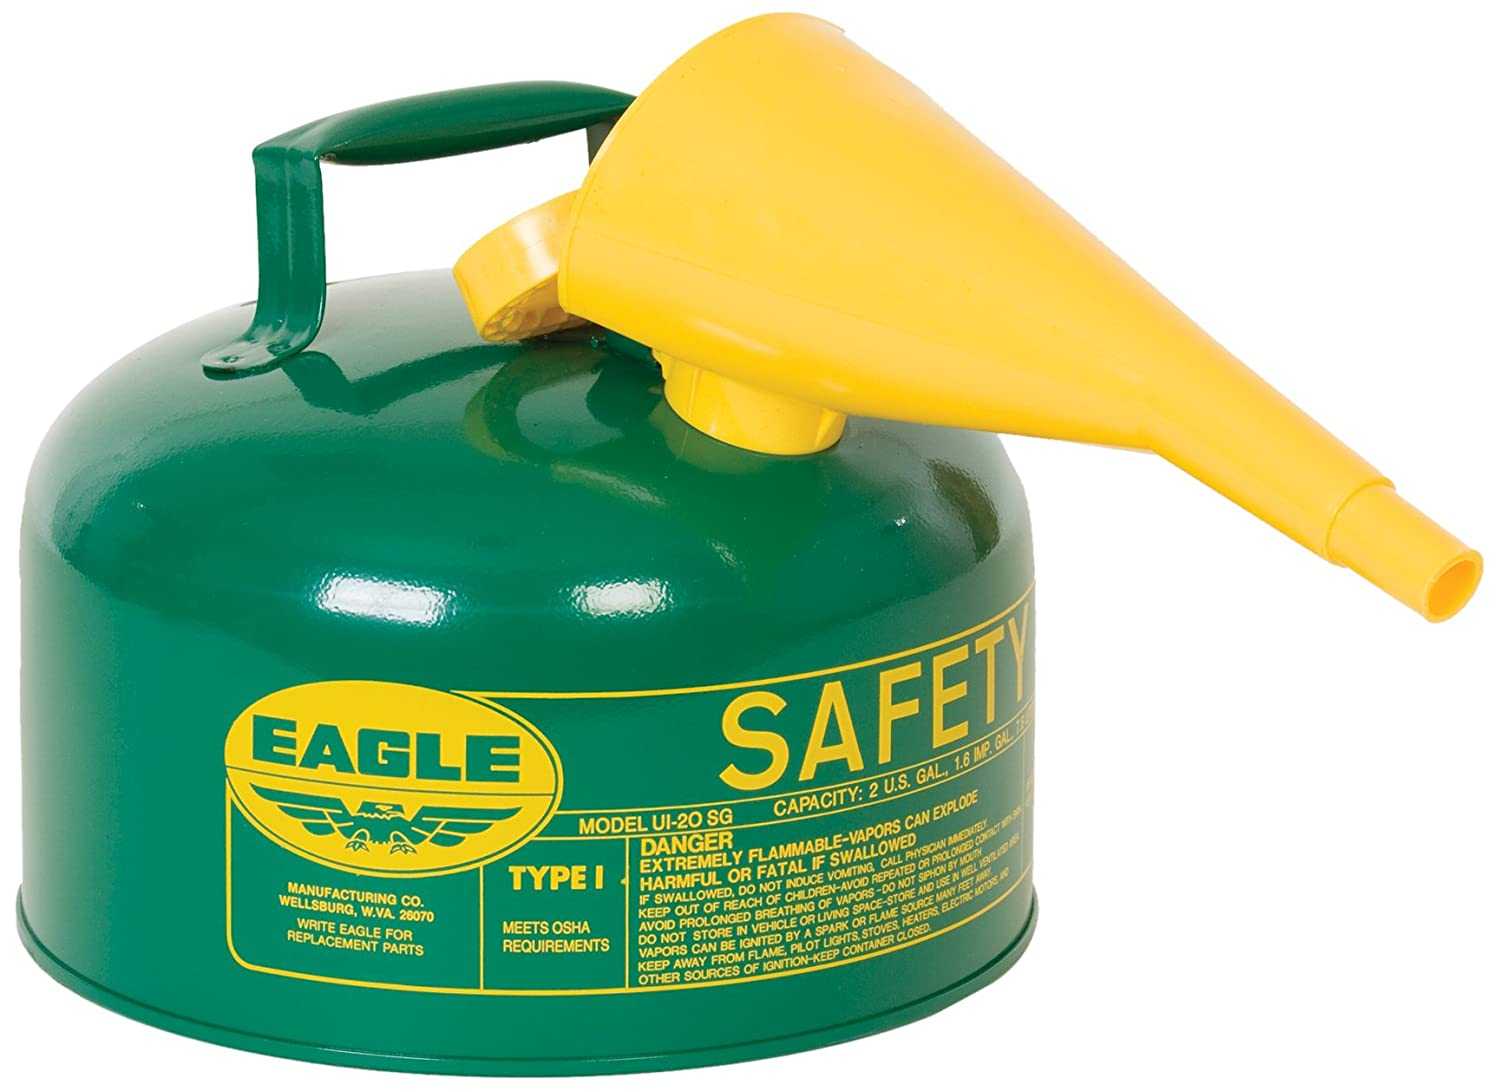 Safety Gas Can >> Eagle Ui 25 Fsg Green With Funnel Metal Safety Gas Can 2 5 Gal Capacity